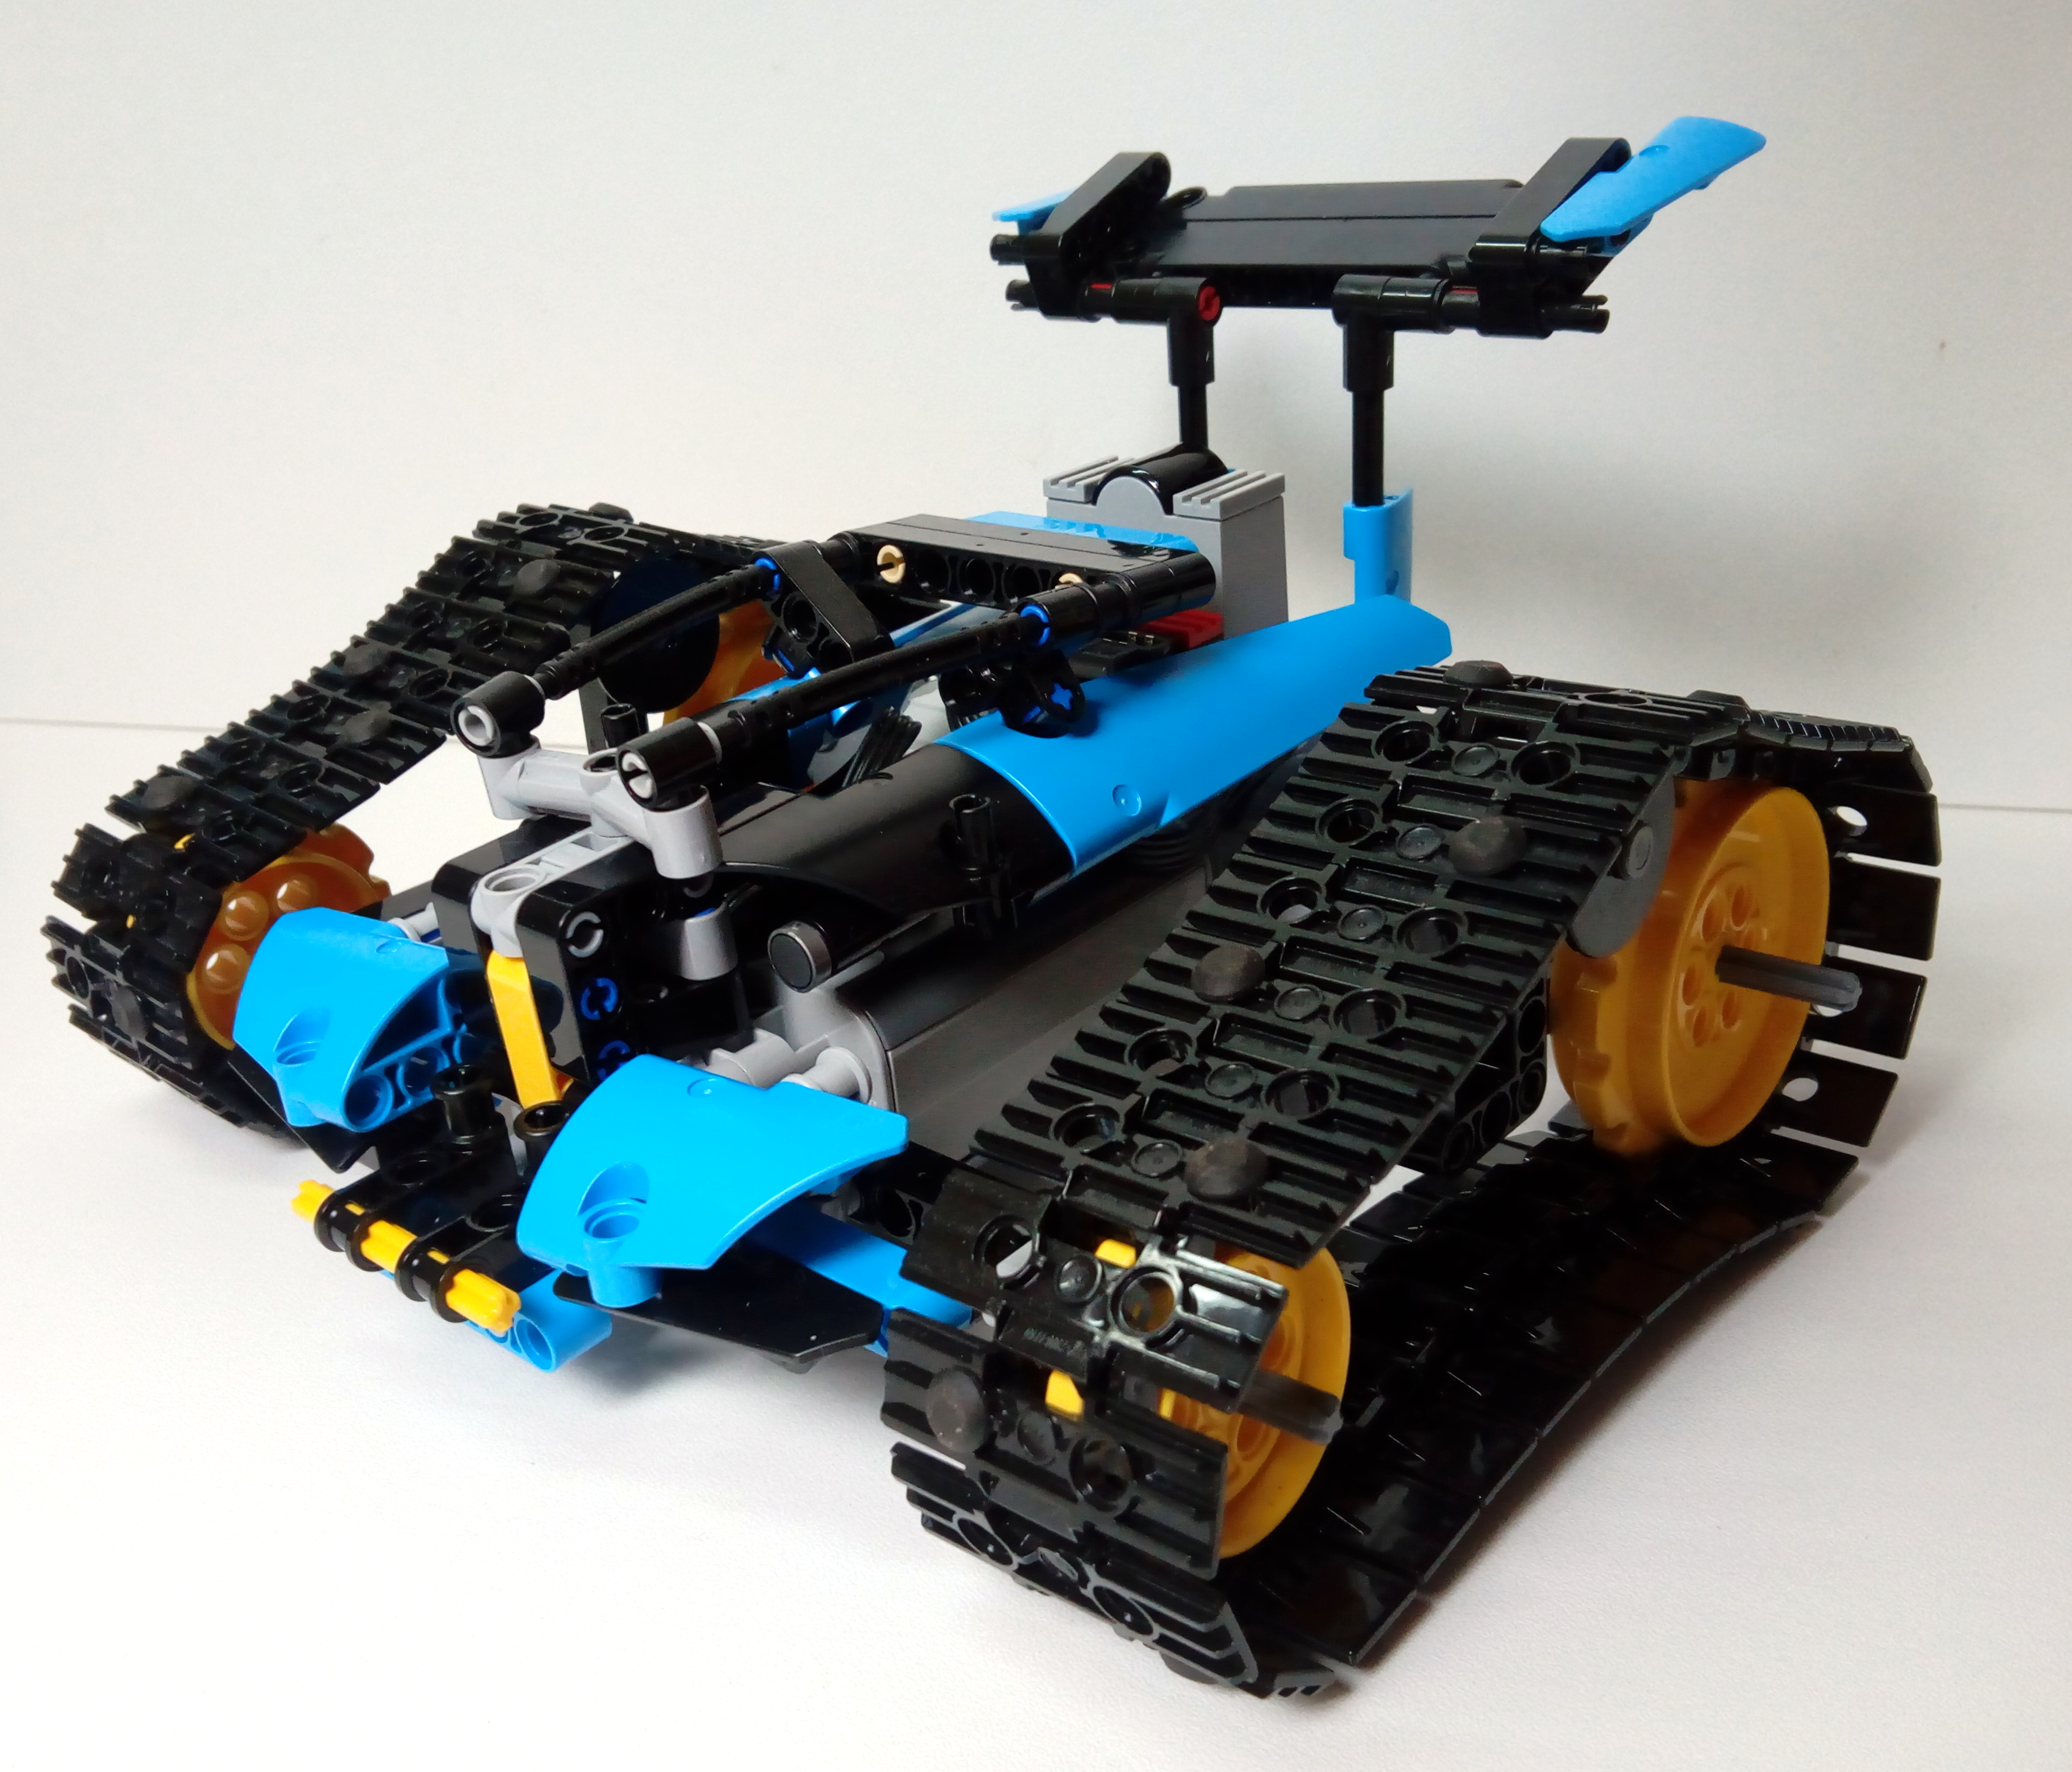 Review: 42095-1 Remote-Controlled Stunt Racer ...